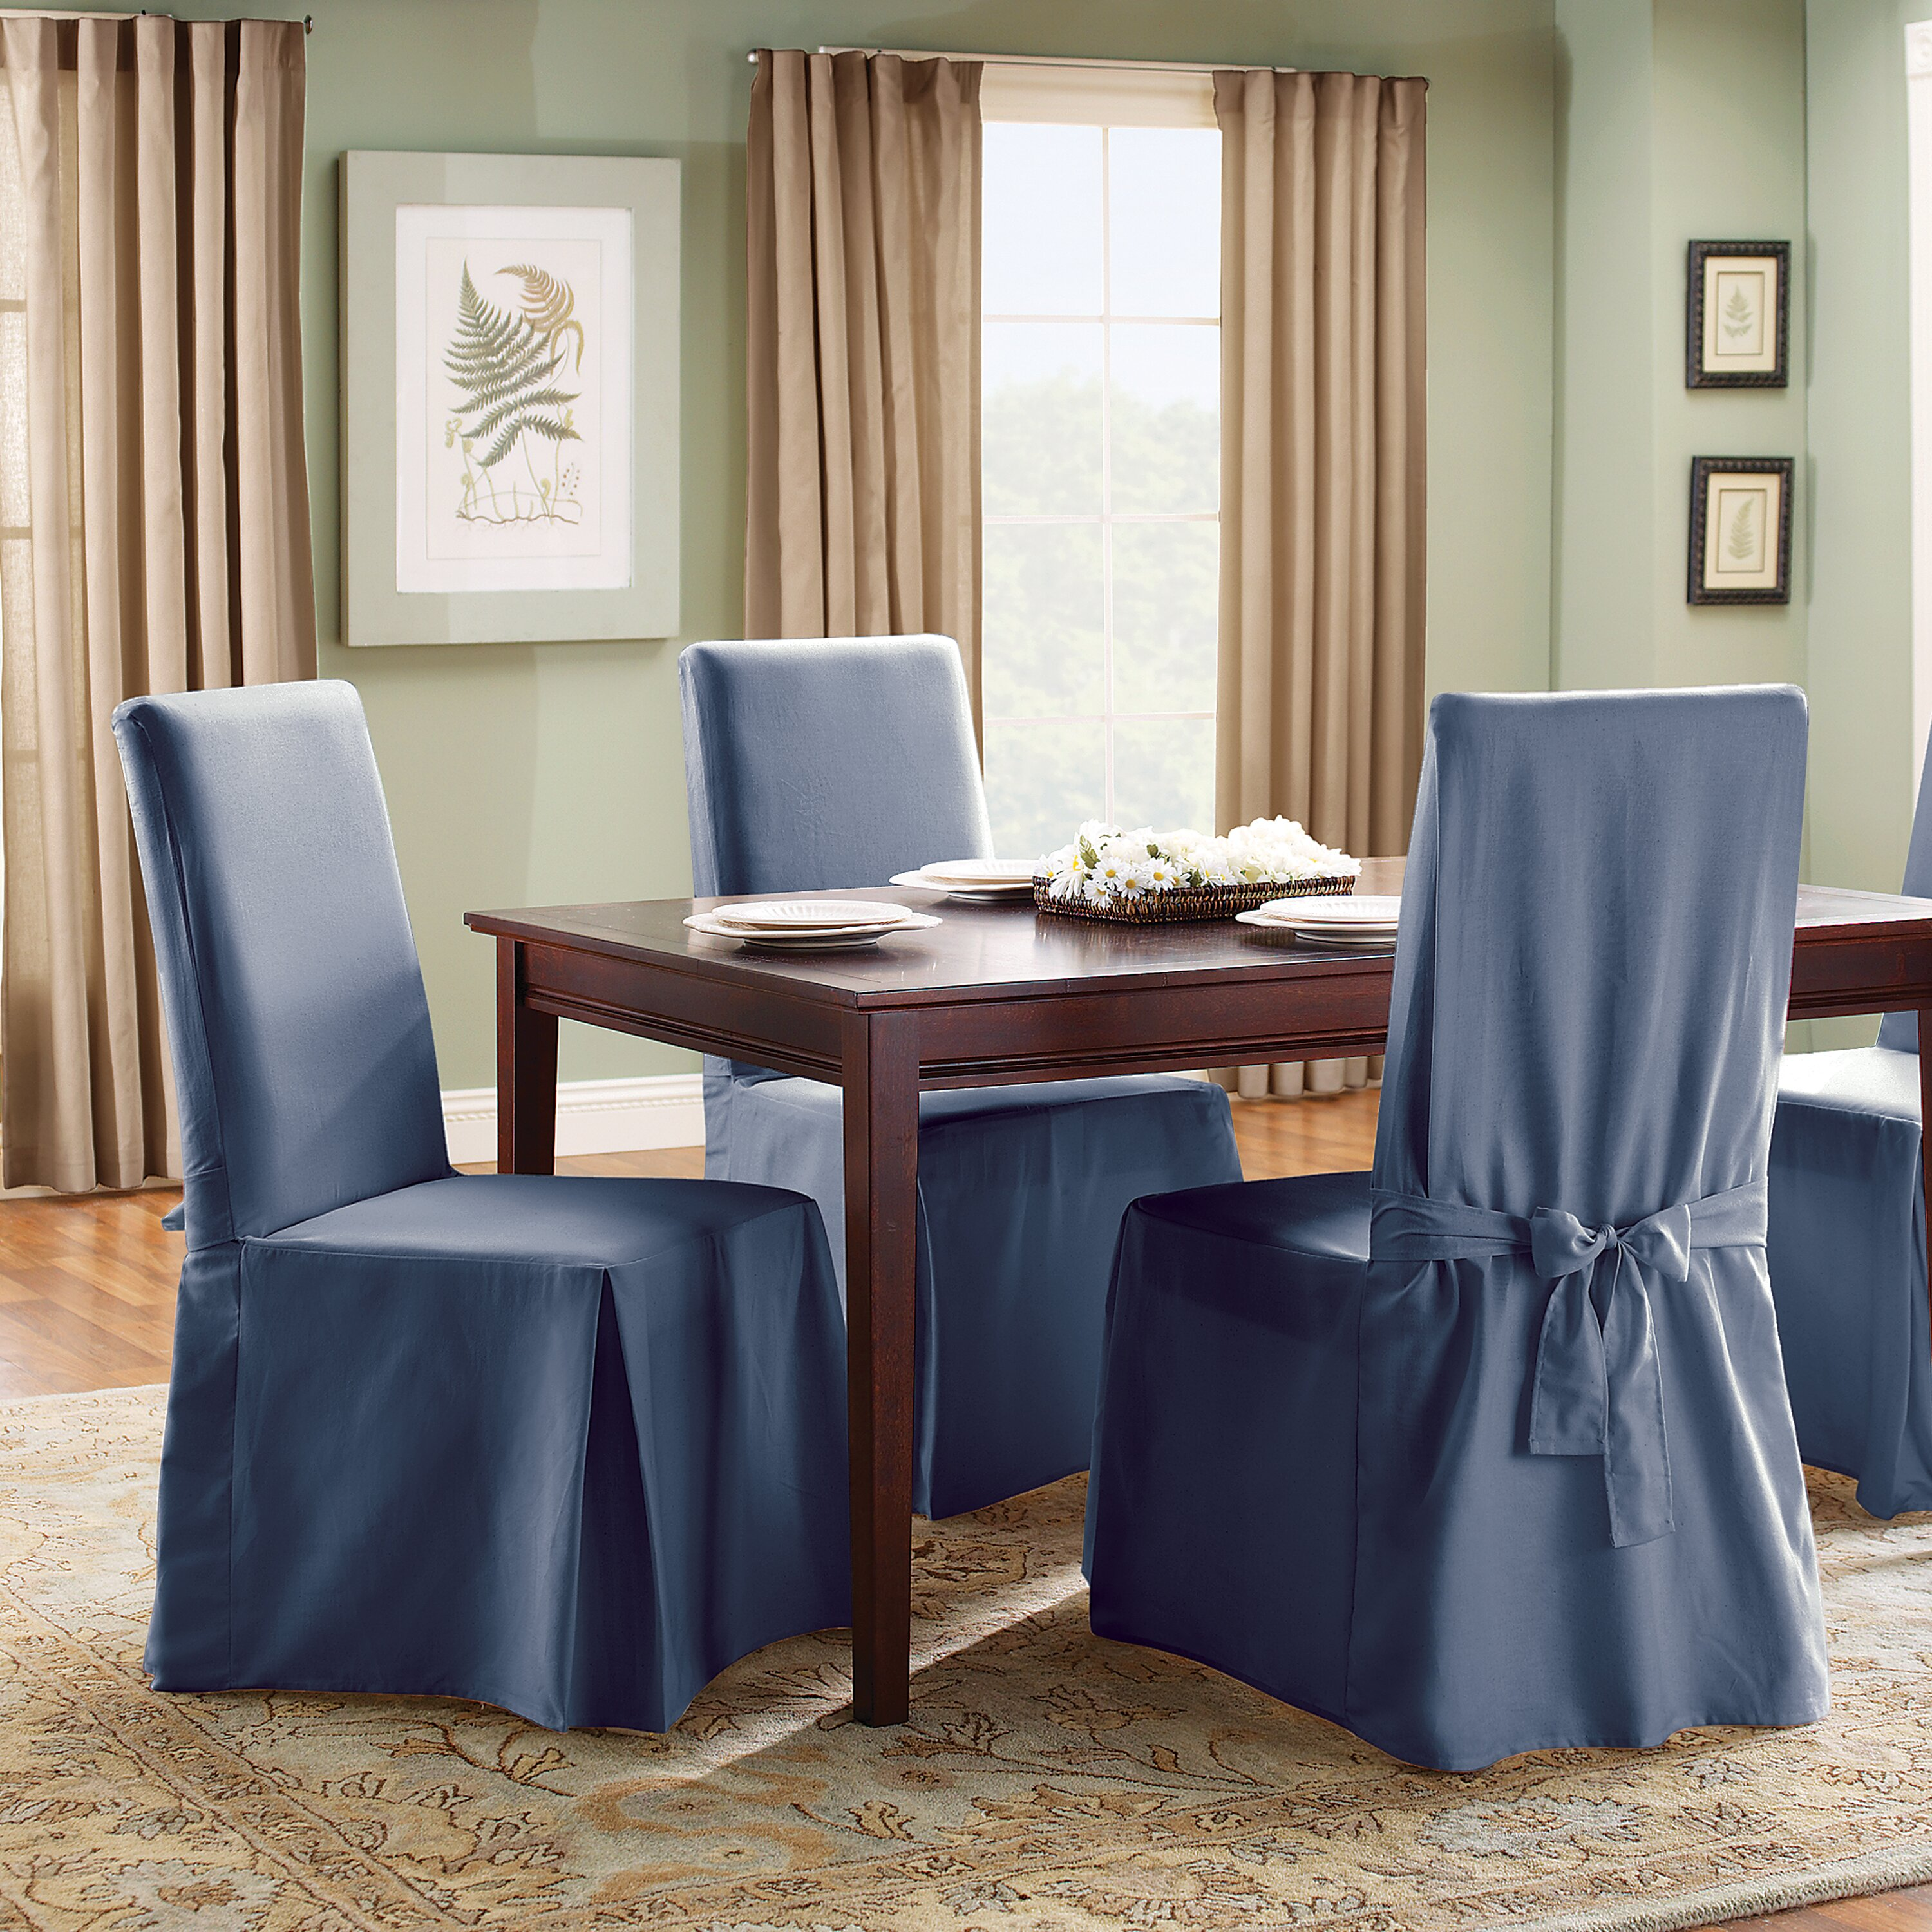 Arm Chair Dining Room Aico Michael Amini Chateau De Lago Set Of 2 Arm Chair In Category